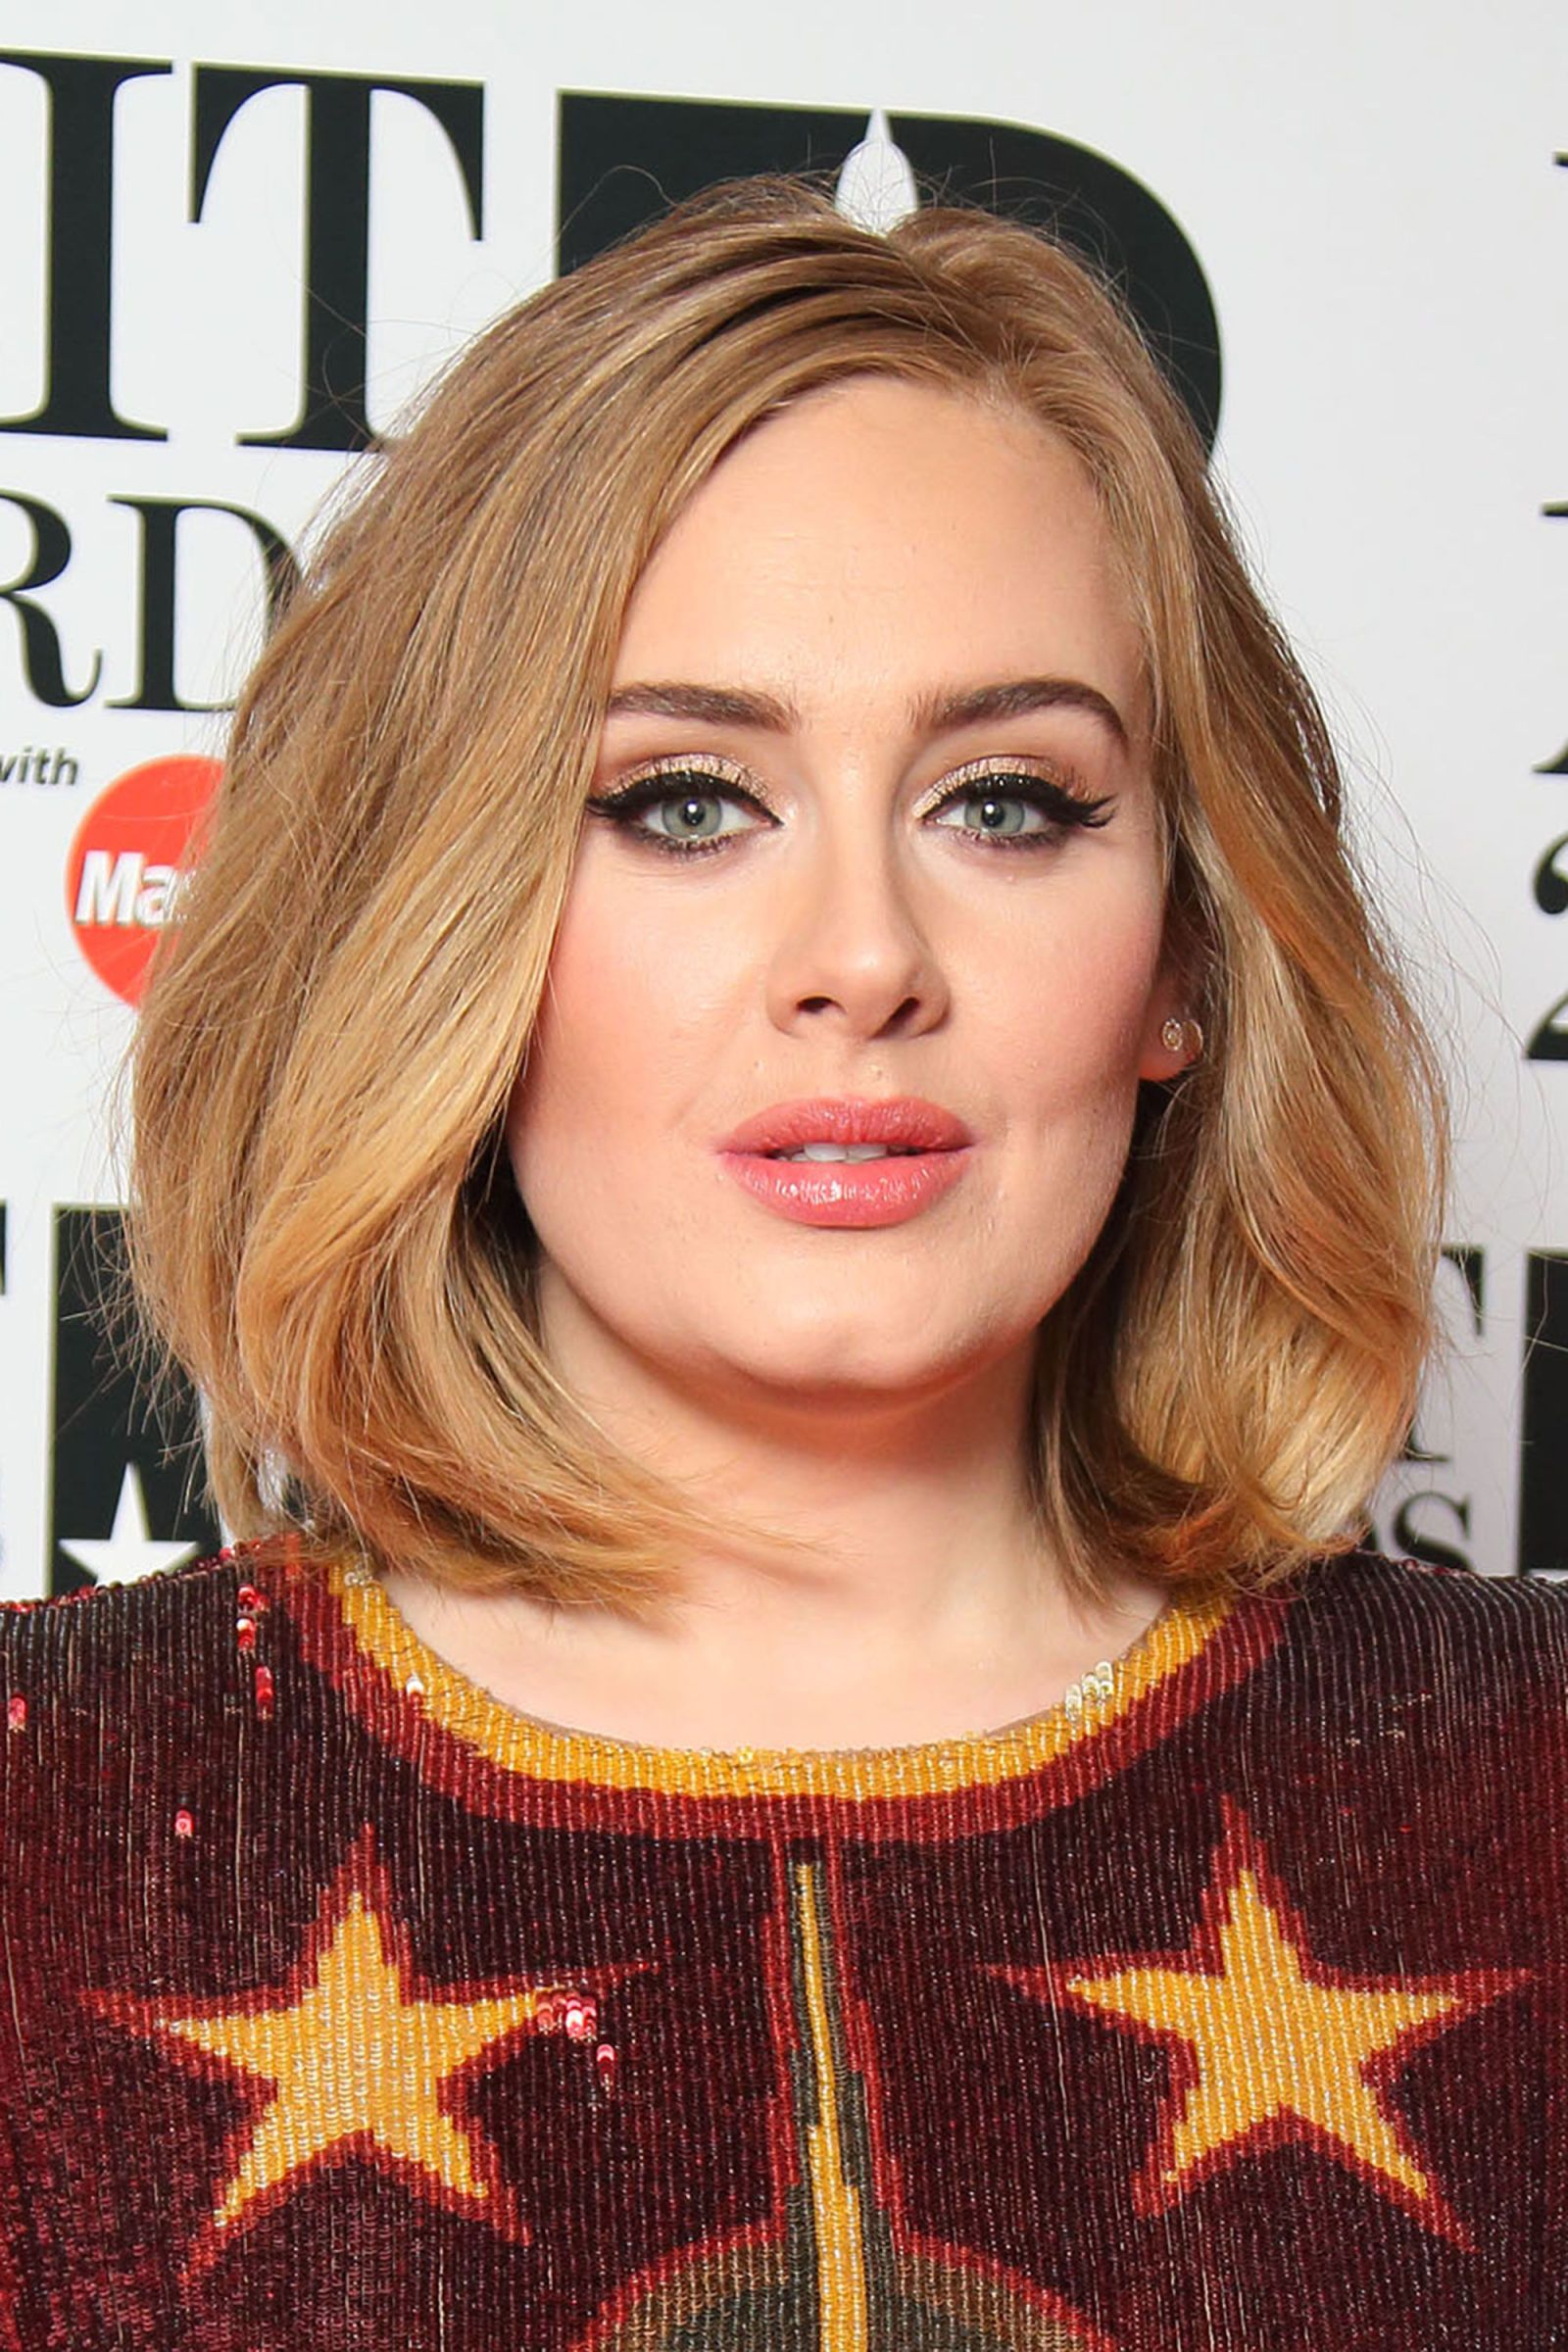 Adele short hairstyle with blonde hair color